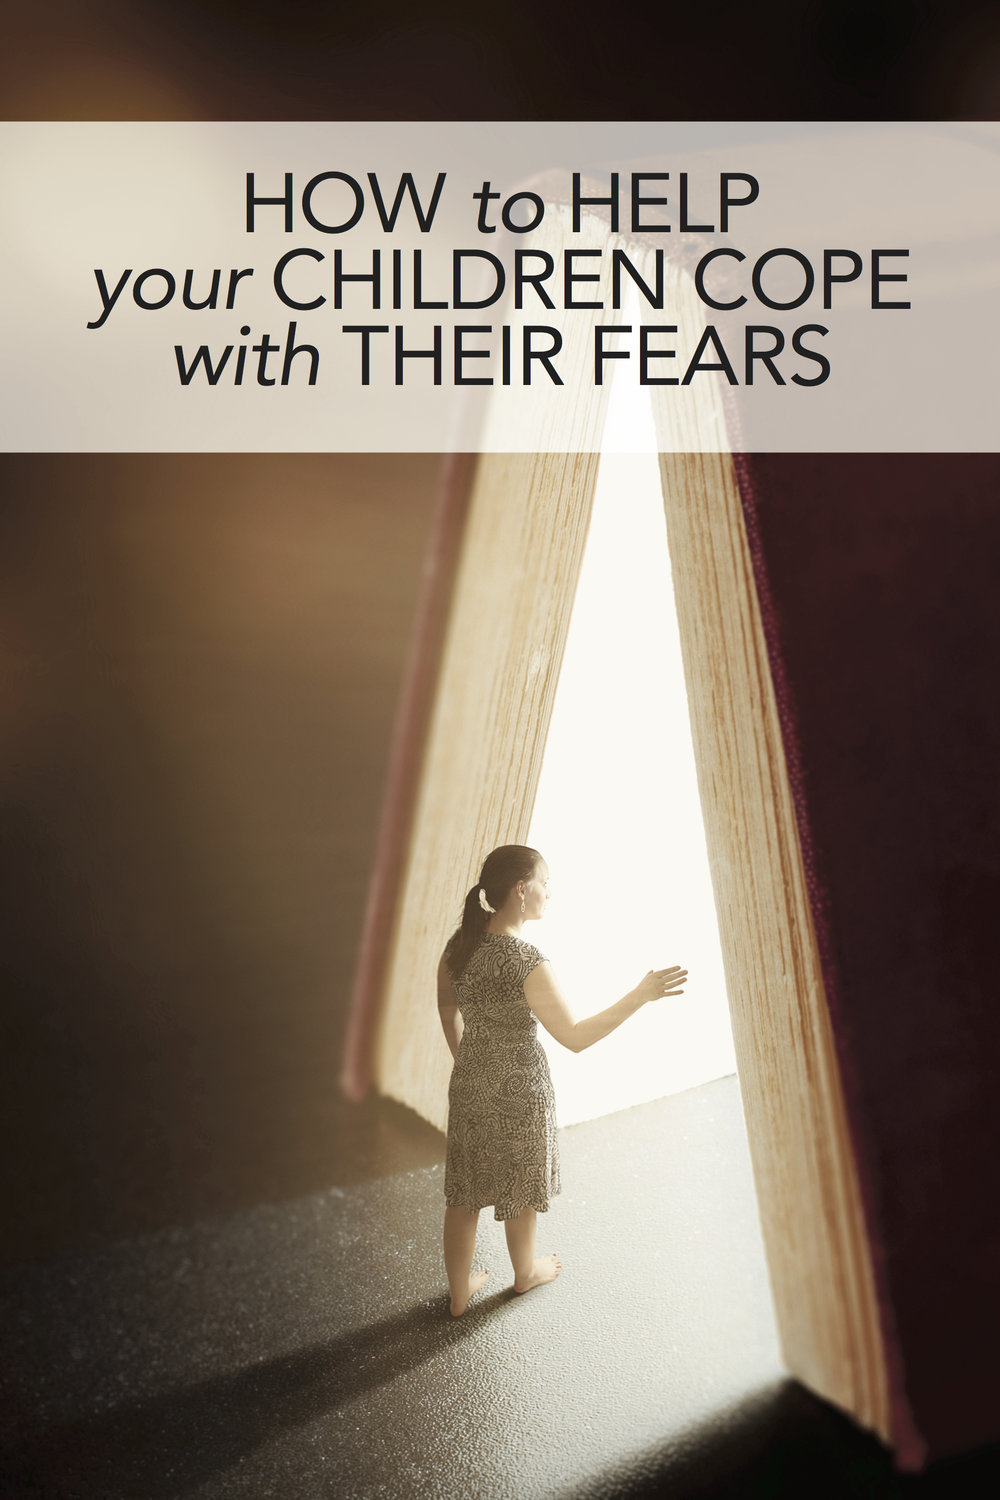 How to help our children cope with their fears